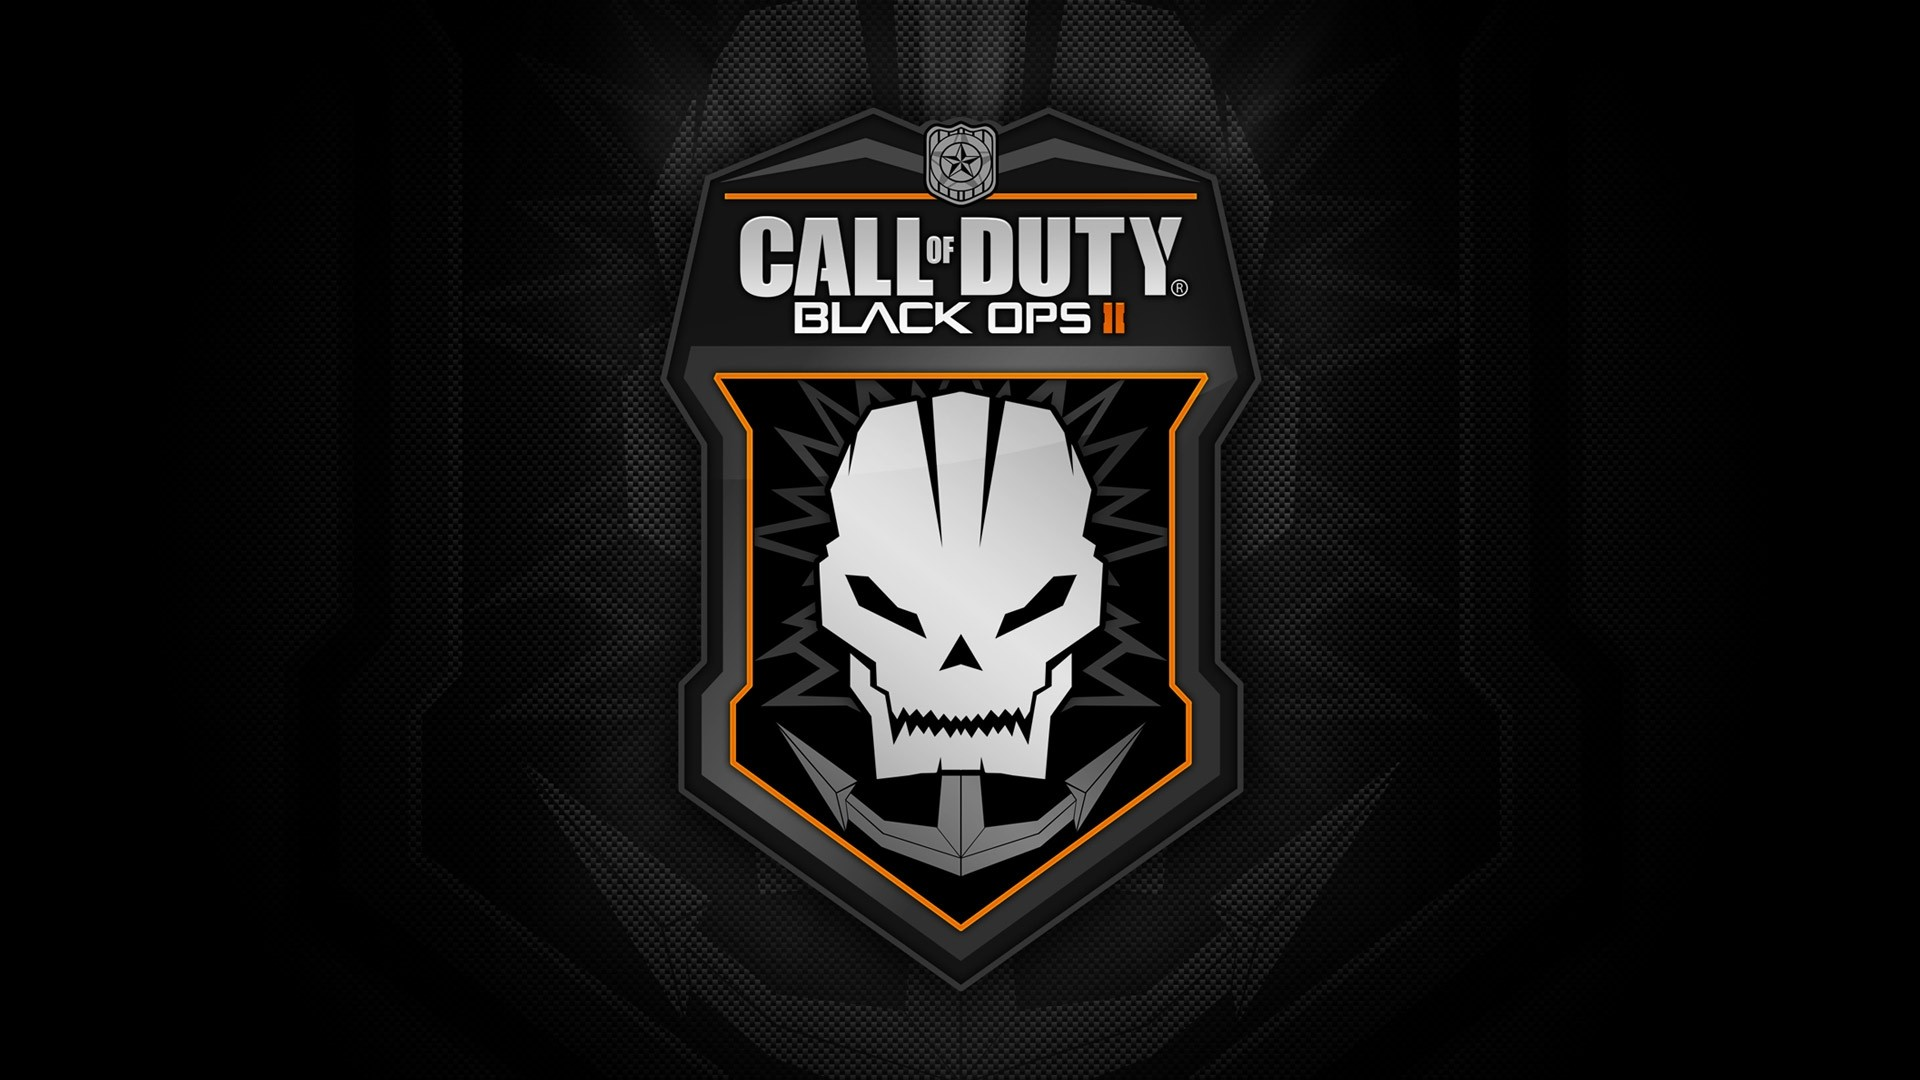 Download Black Ops 3 Wallpaper Call of Duty 35